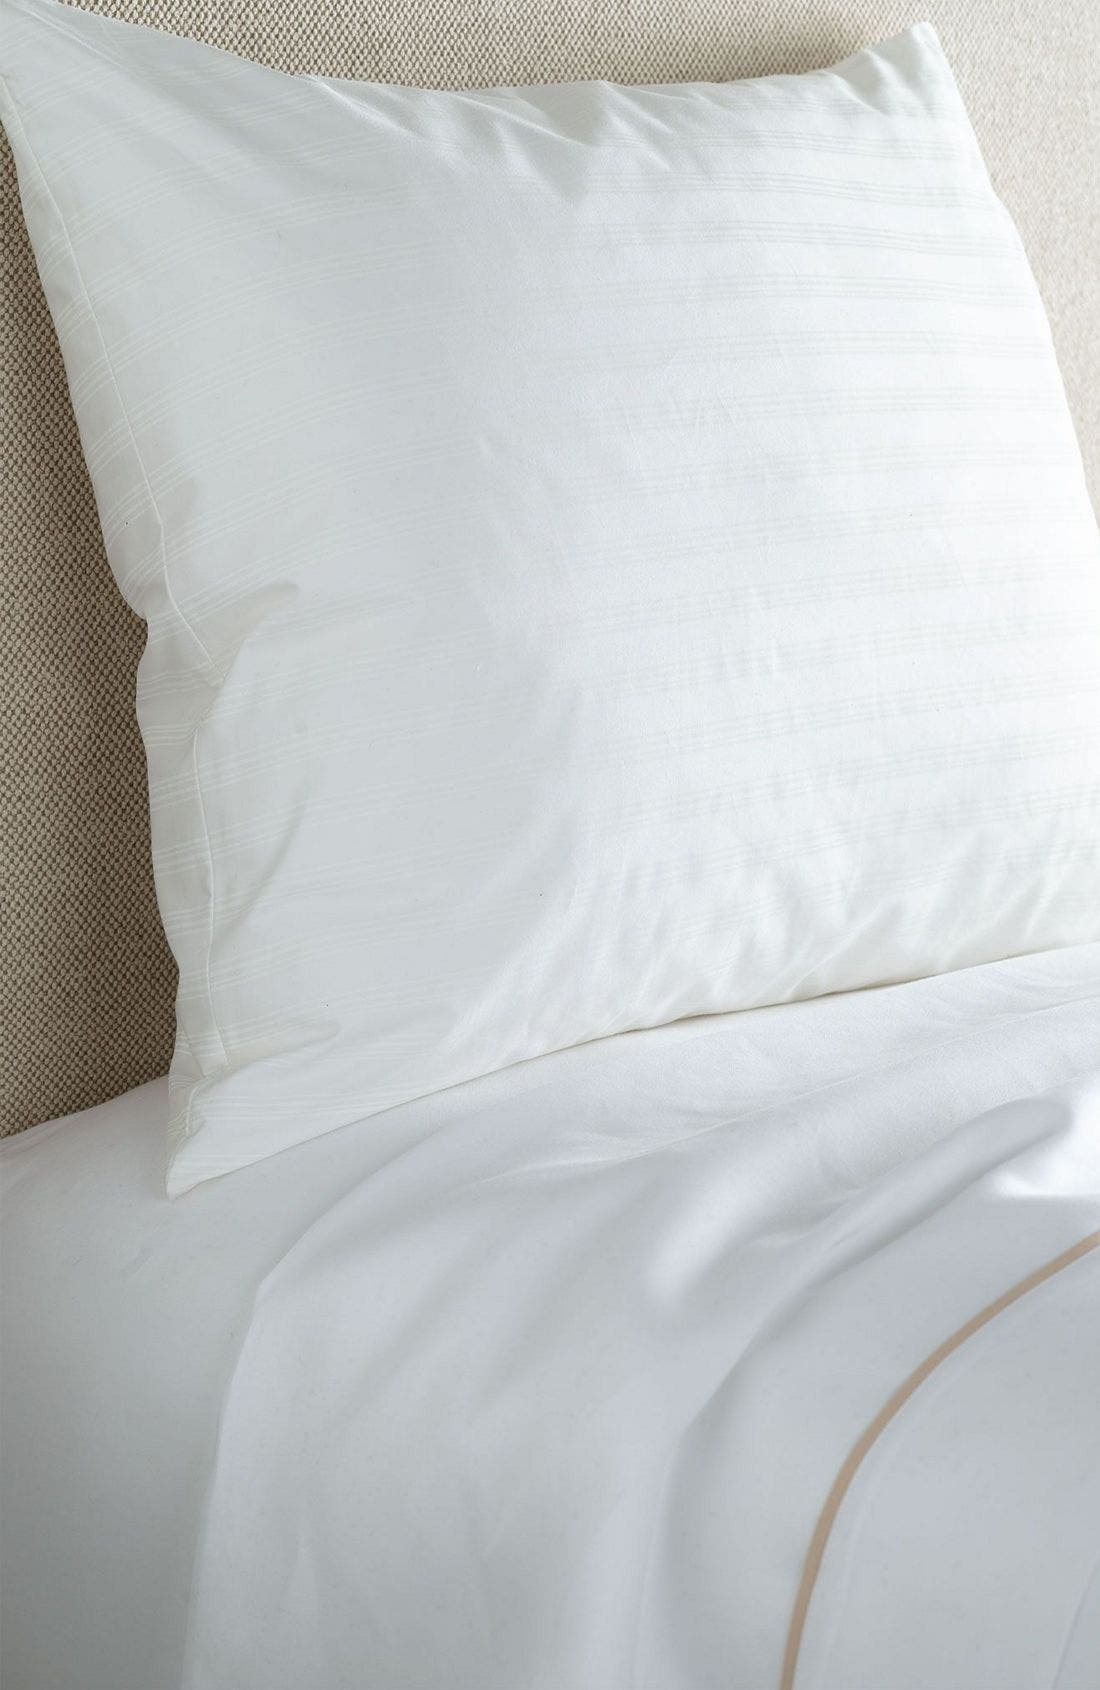 'Home Collection' Hypoallergenic Pillow,                             Alternate thumbnail 6, color,                             WHI